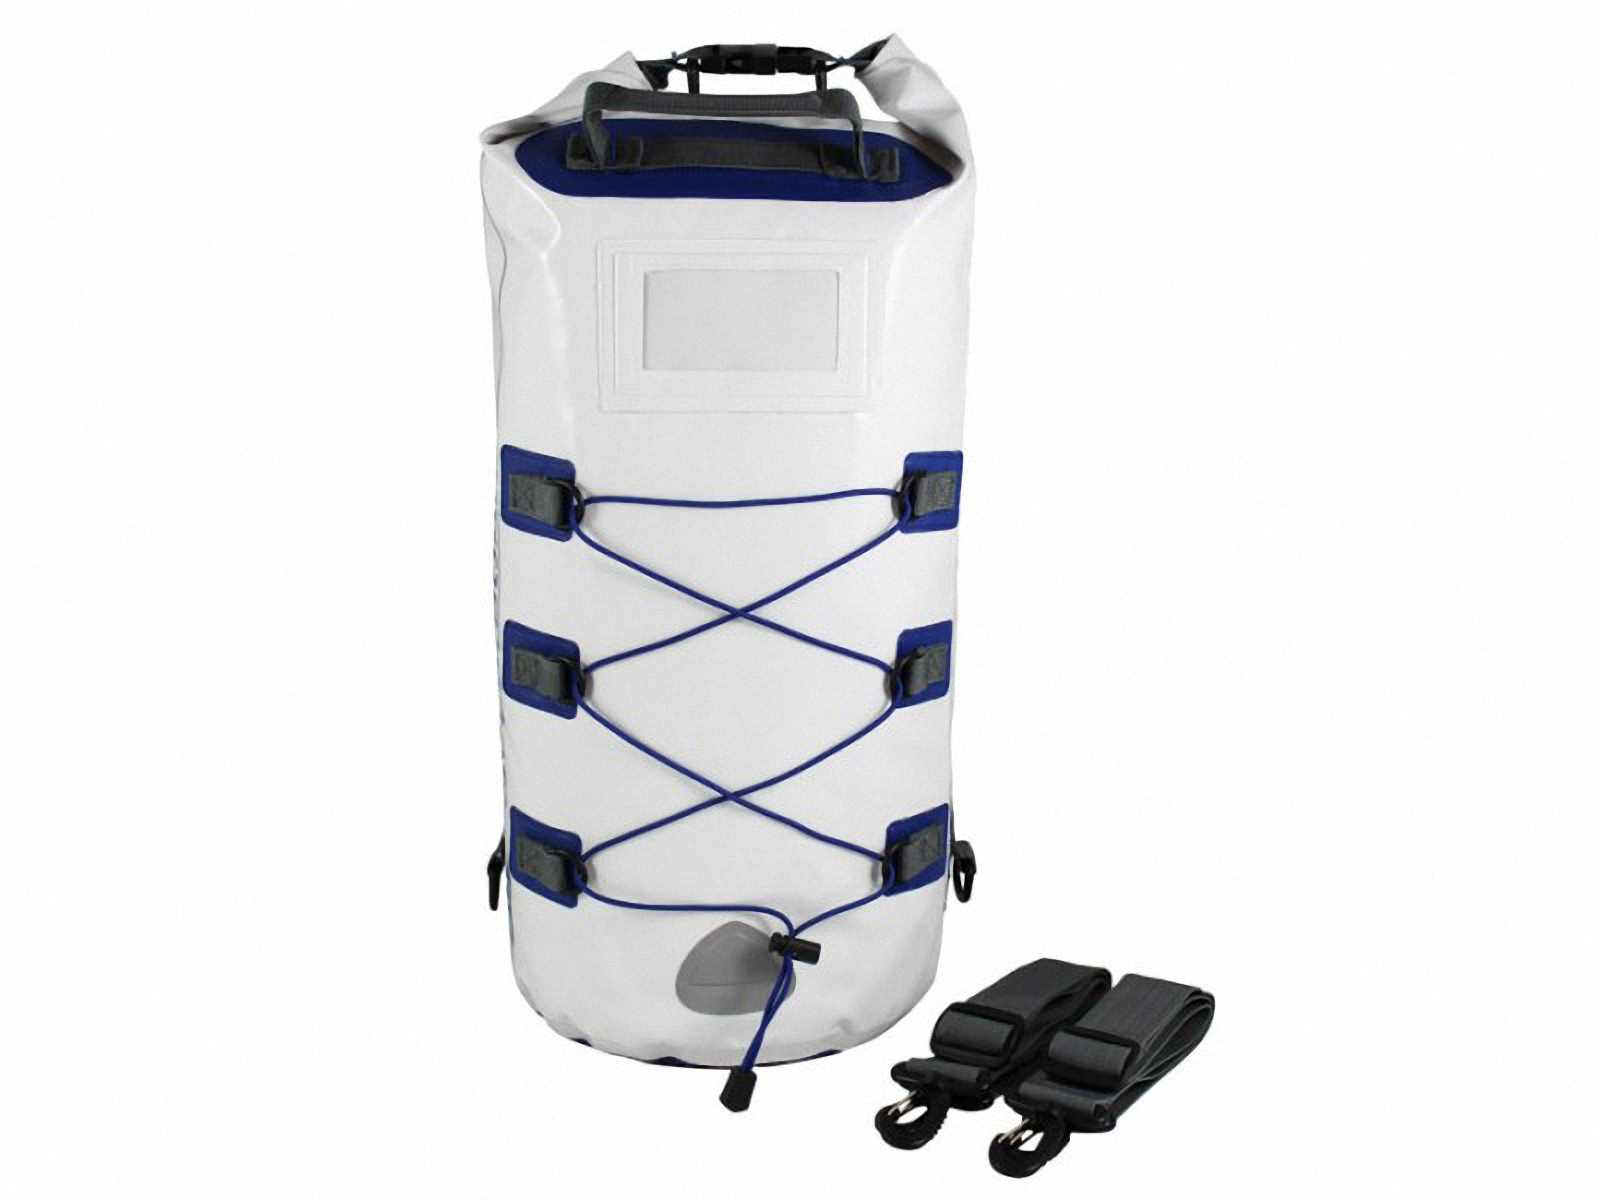 Водонепроницаемый рюкзак OverBoard OB1016WHT - Waterproof Boat Master Dry Tube - 20 Litres. Фото 4